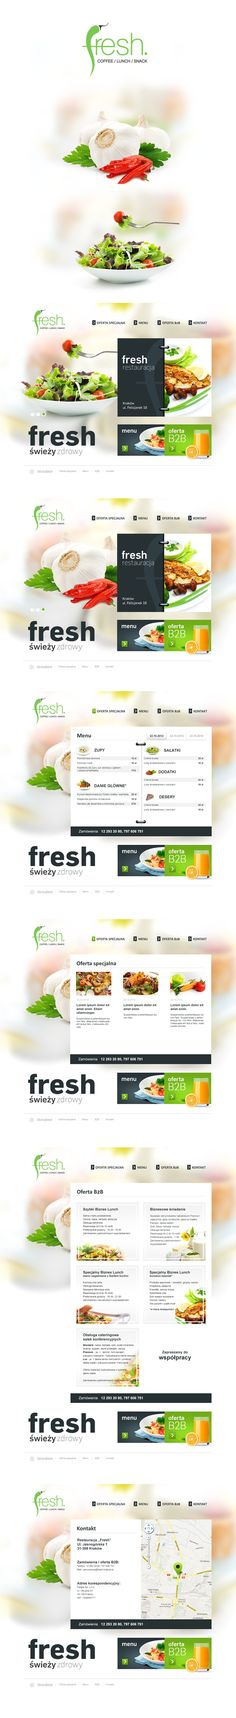 Fresh by Bartłomiej Gęboliś, via Behance